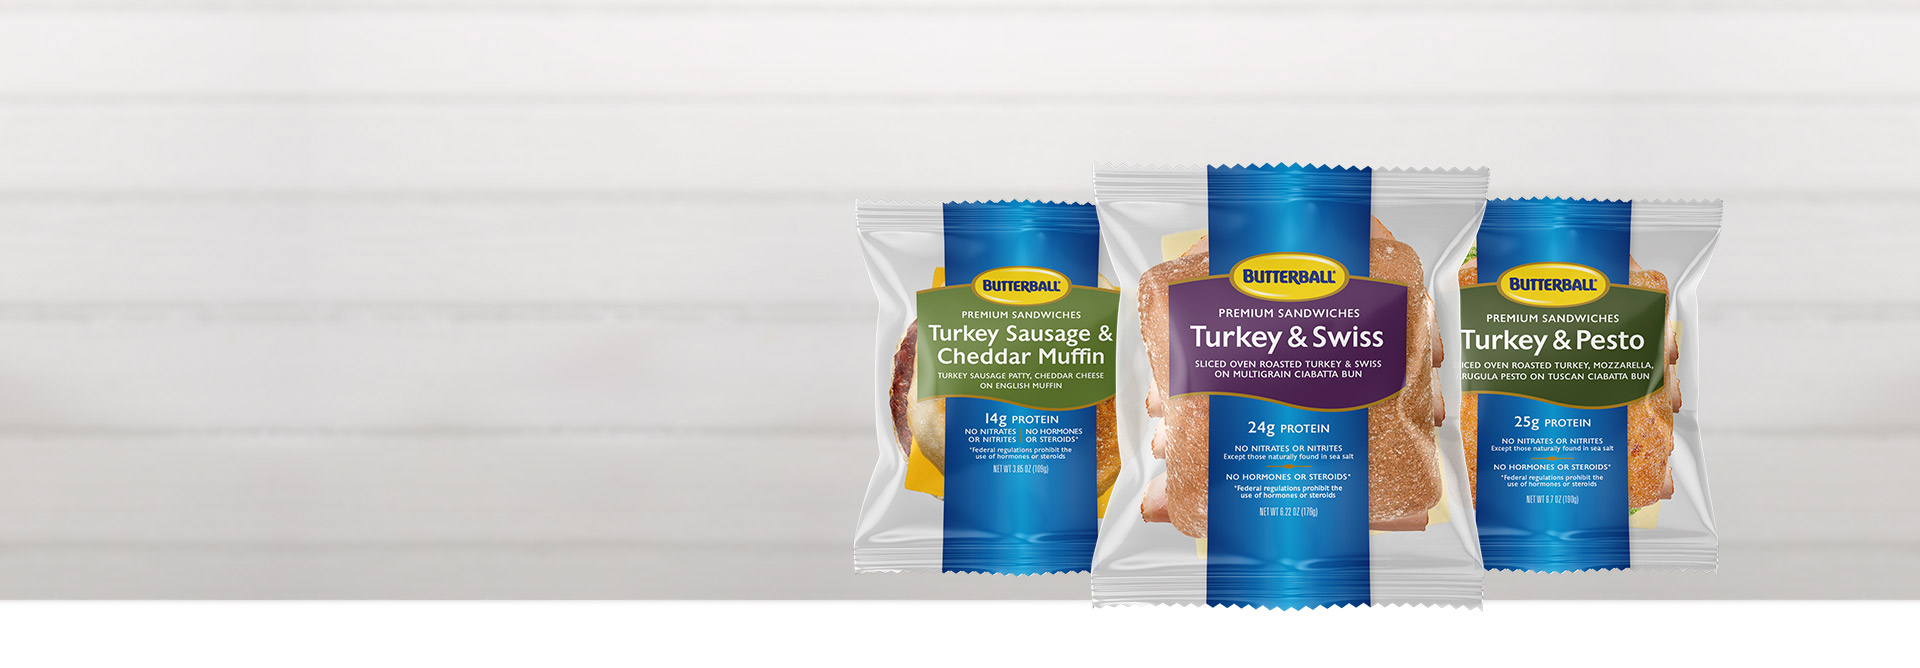 Introducing Individually Wrapped Sandwiches.